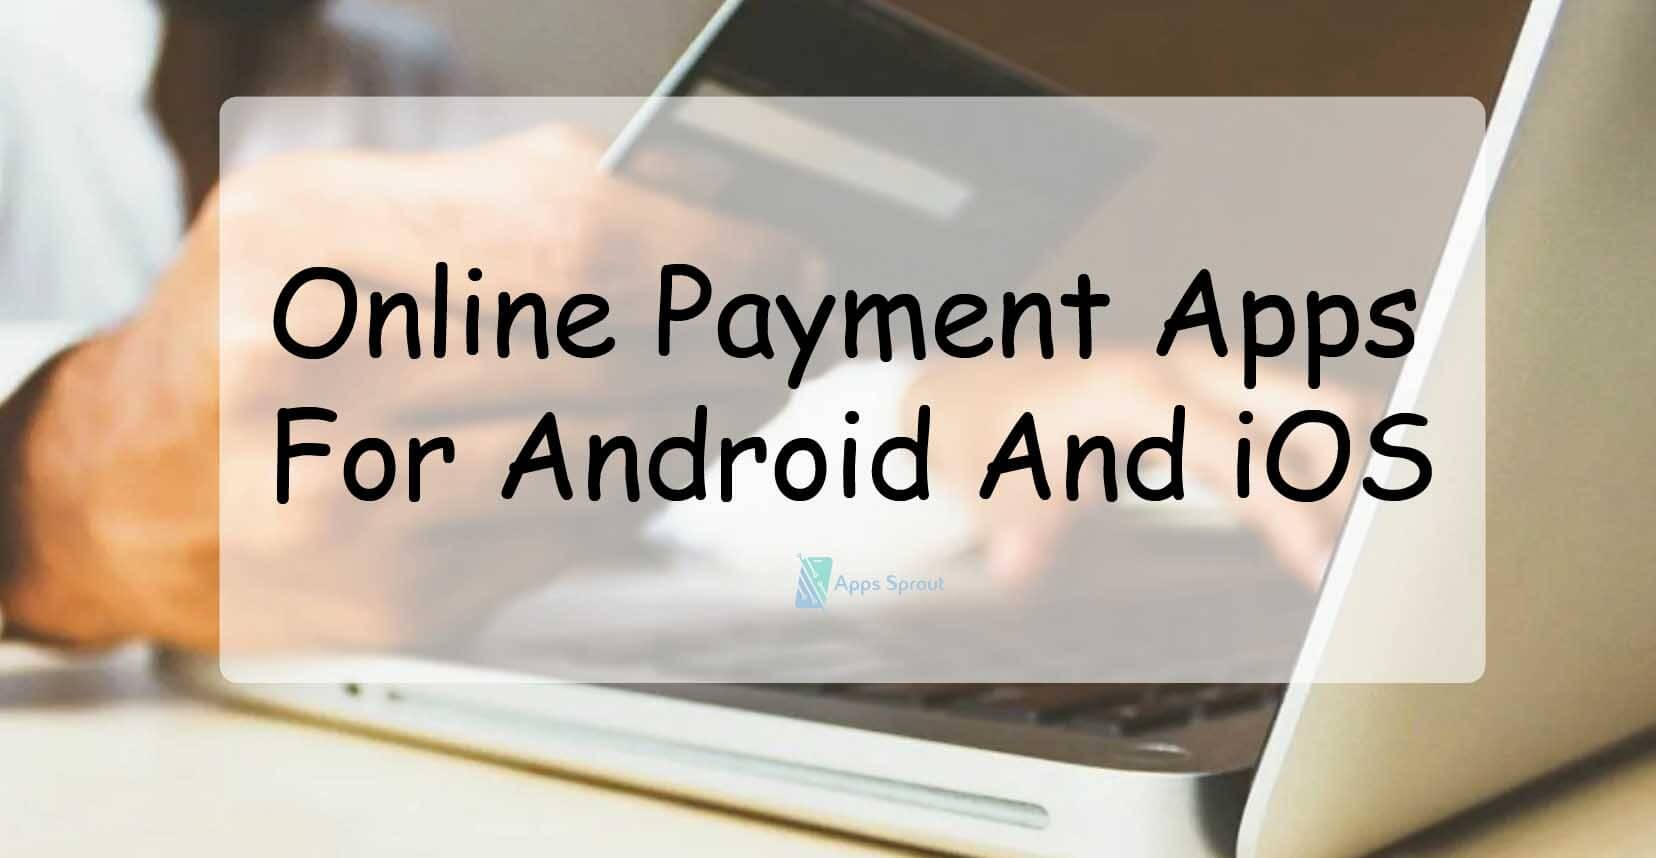 Online Payment Apps